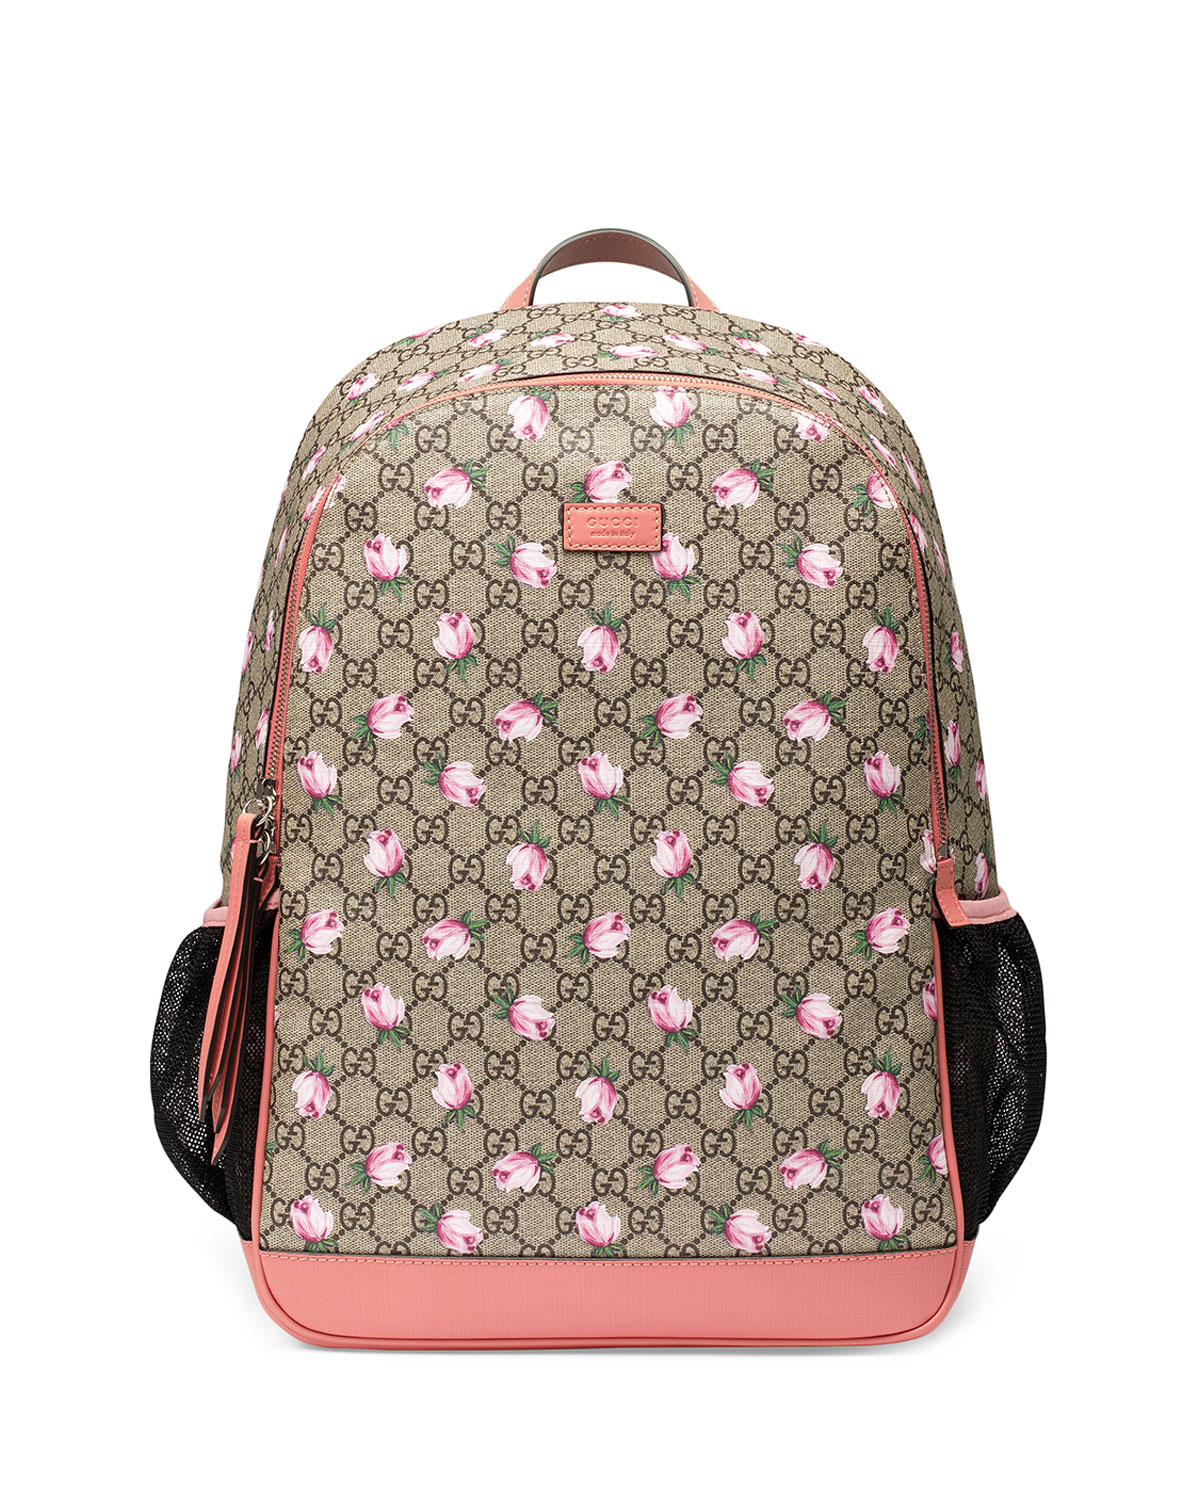 Gucci Classic GG Supreme Rose Backpack Diaper Bag fb558a1c7eca5